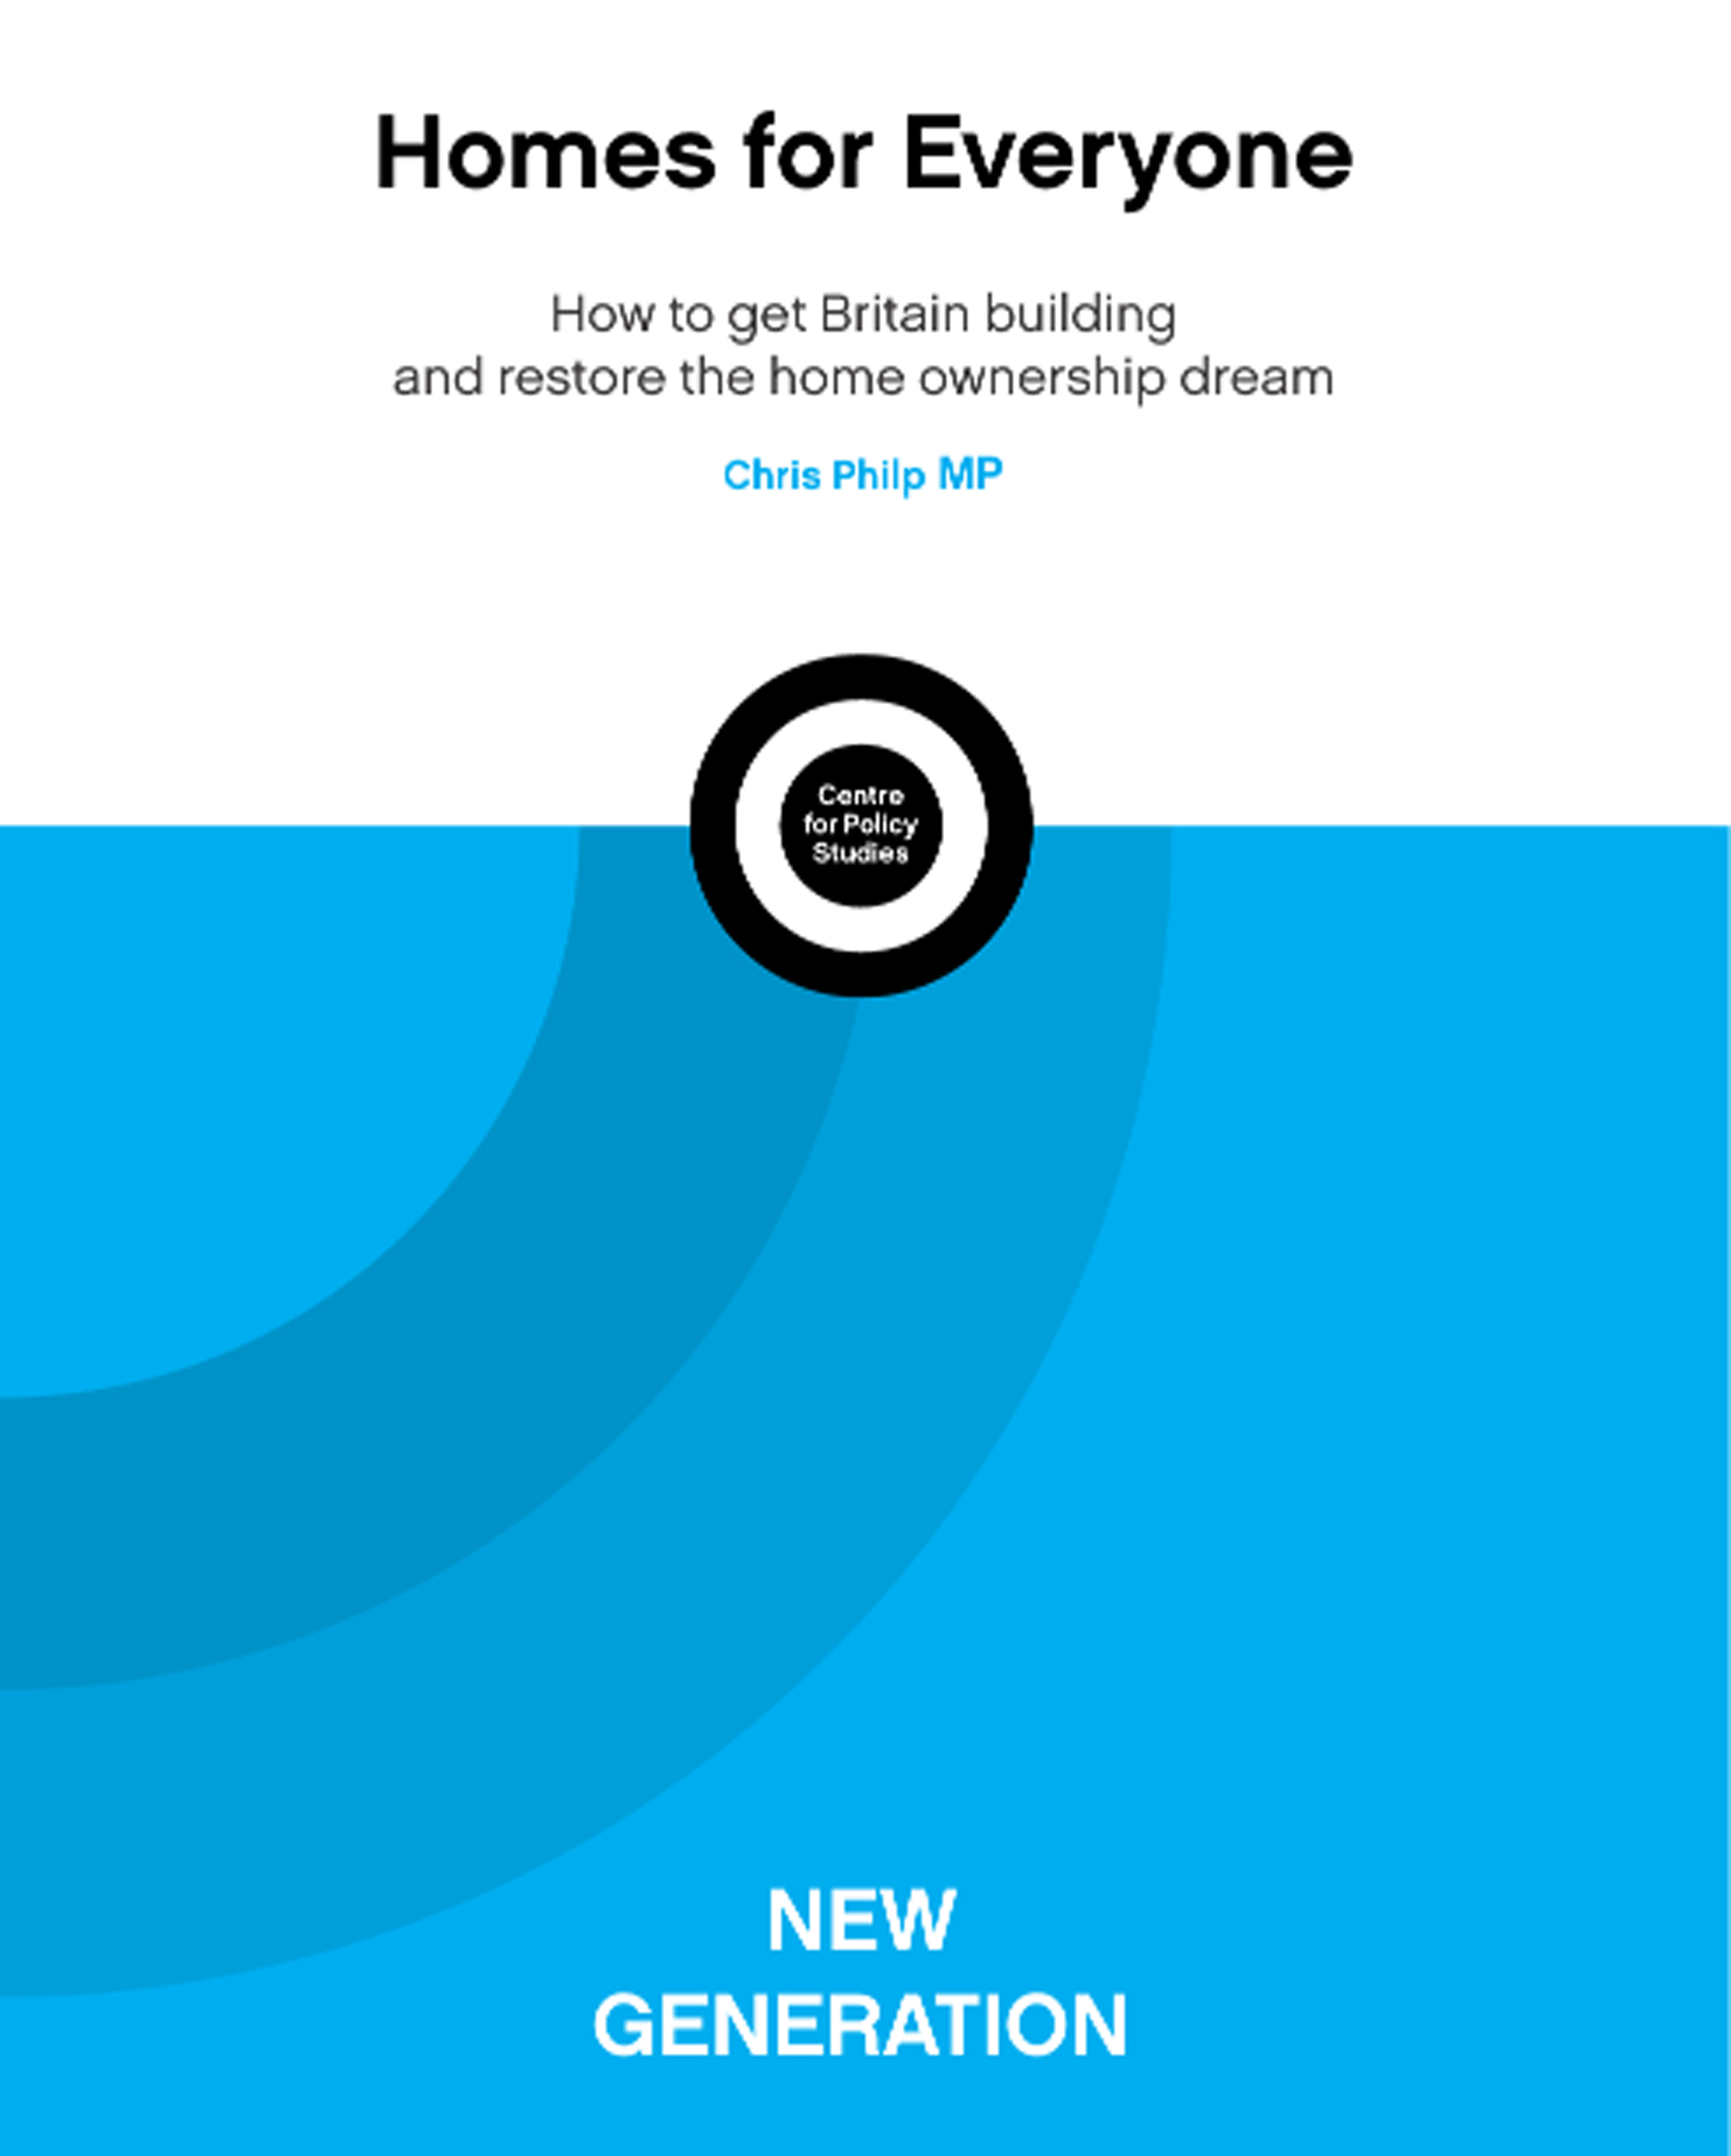 New report proposes further reform of the planning system to increase homebuilding